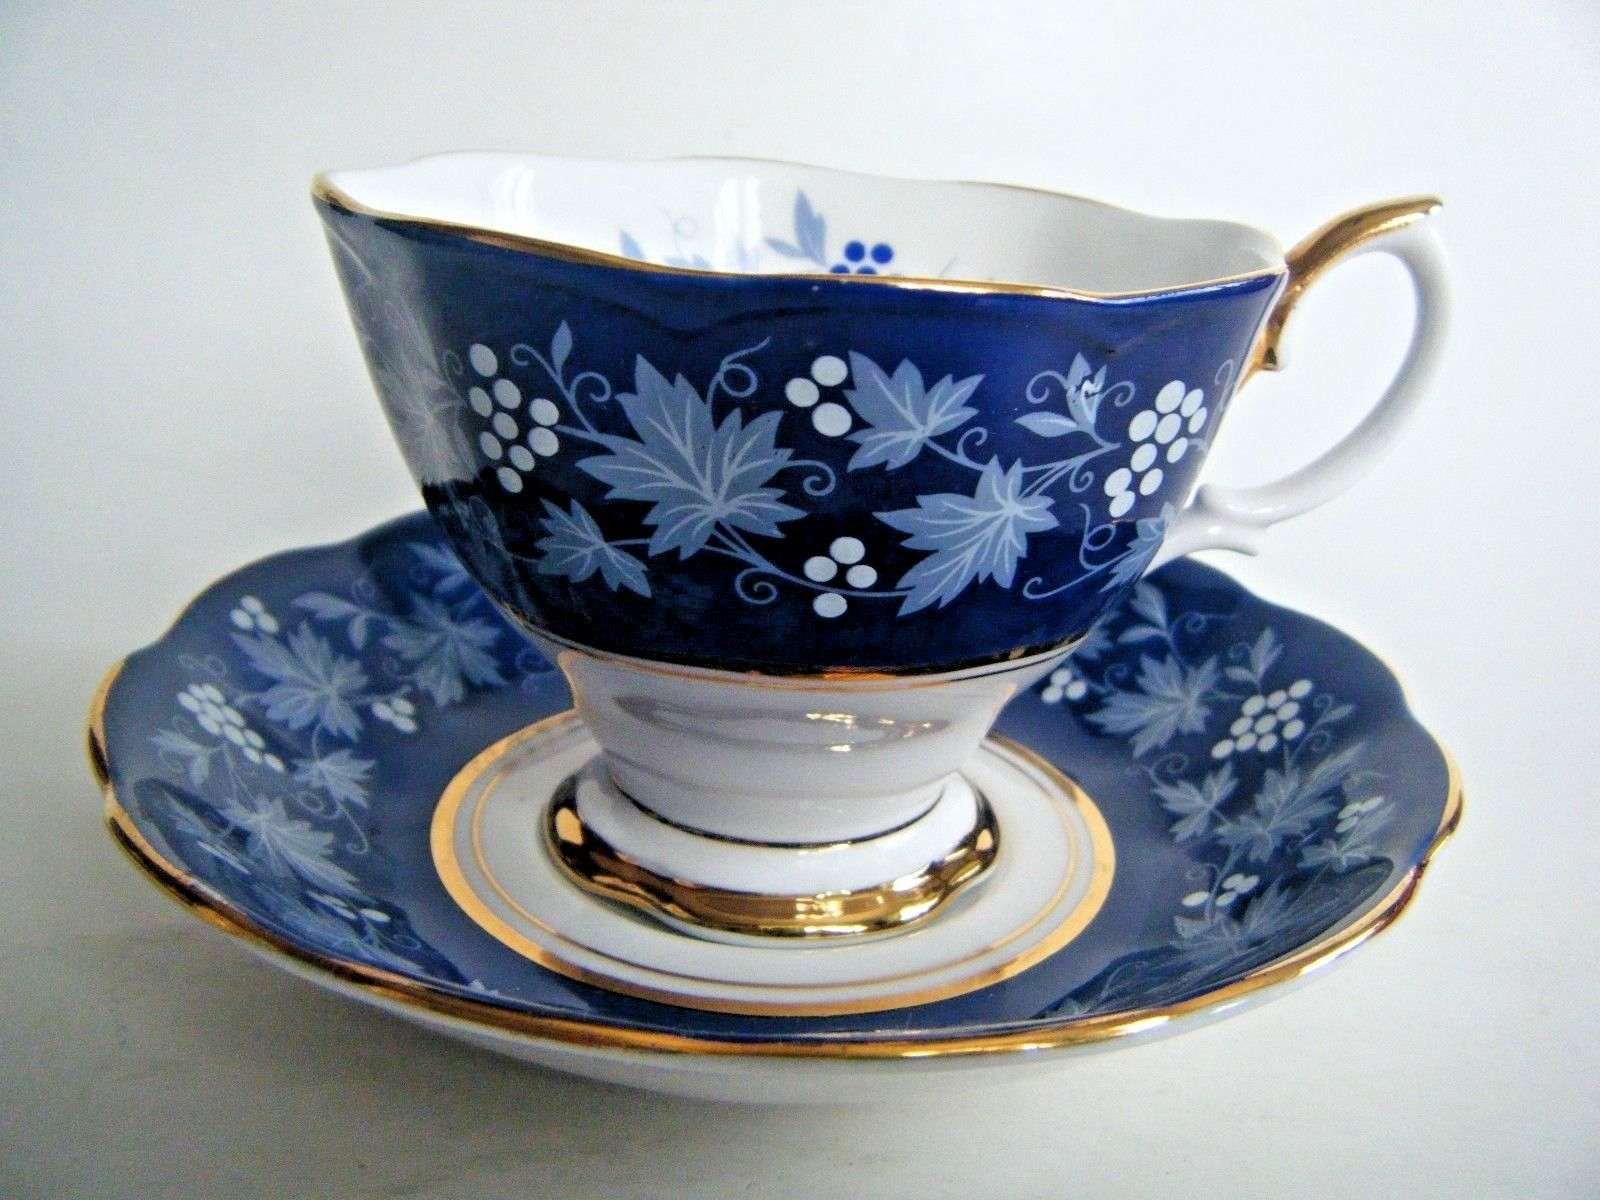 royal albert bone china tea cup saucer chateau series dijon royal blue white sch nes. Black Bedroom Furniture Sets. Home Design Ideas